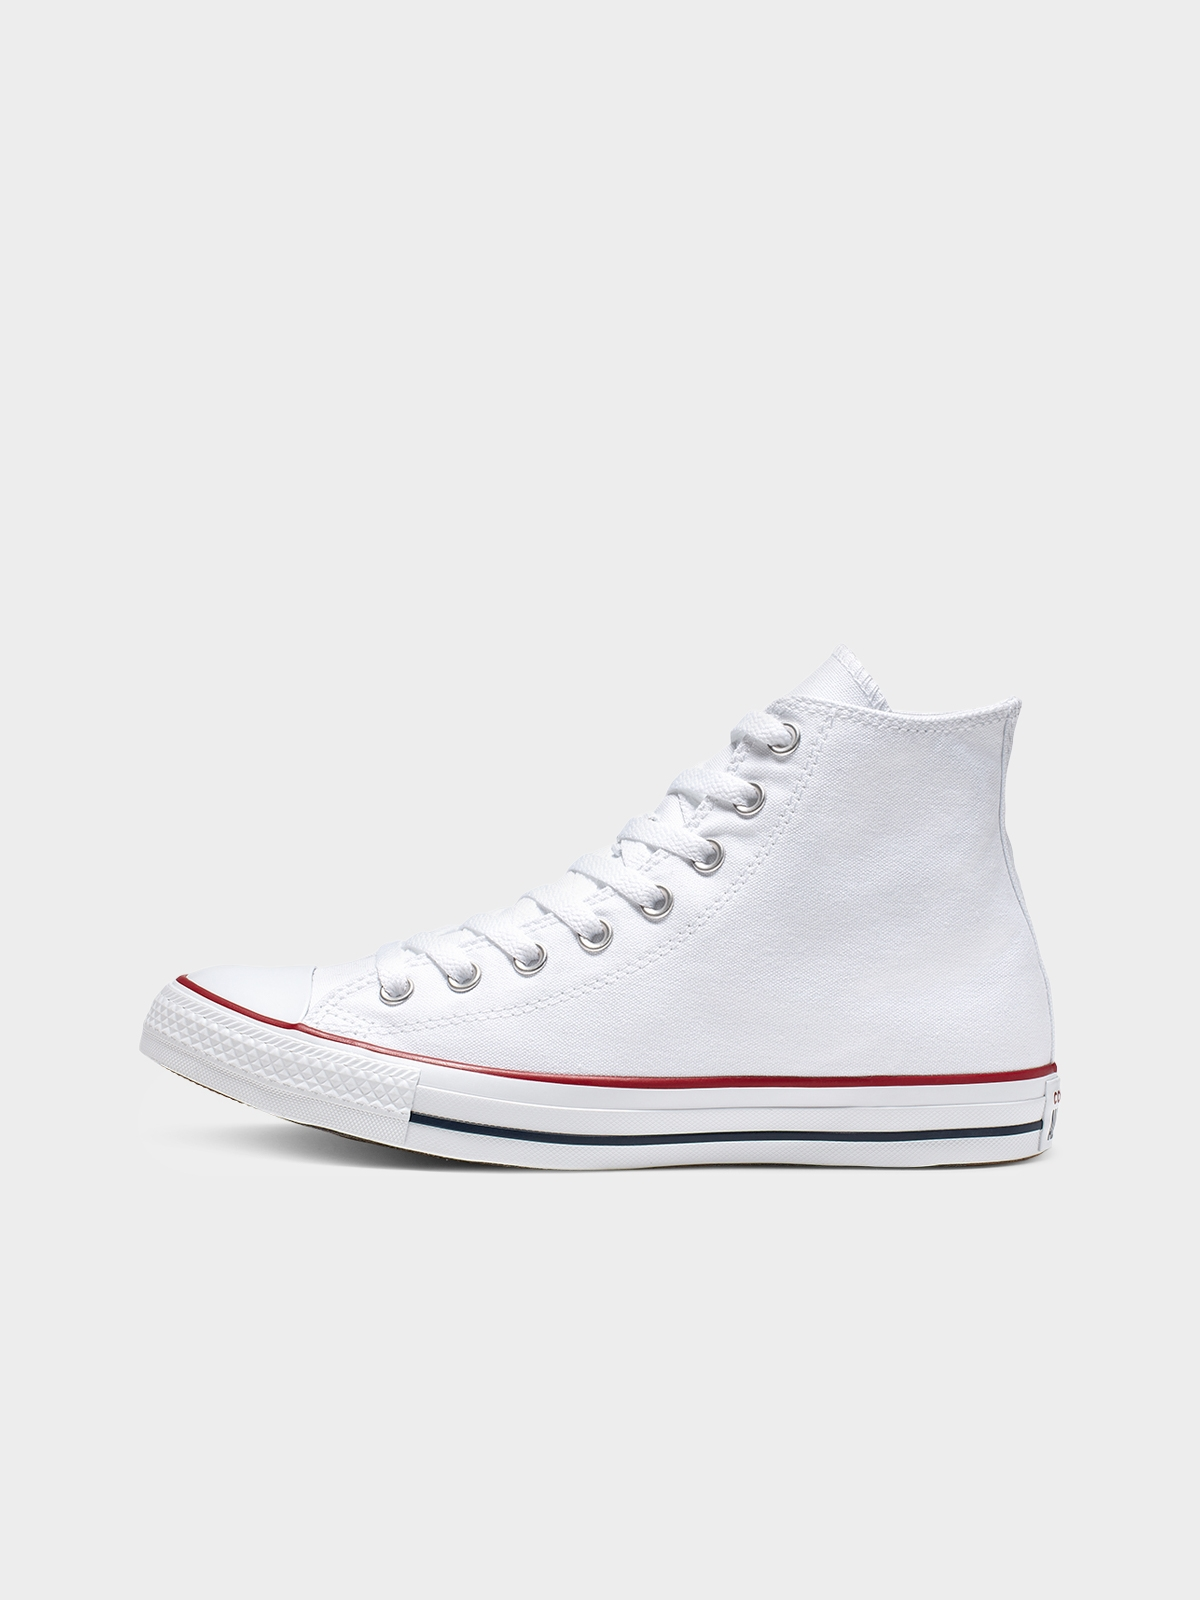 Converse All Star Hi Canvas Sneakers White